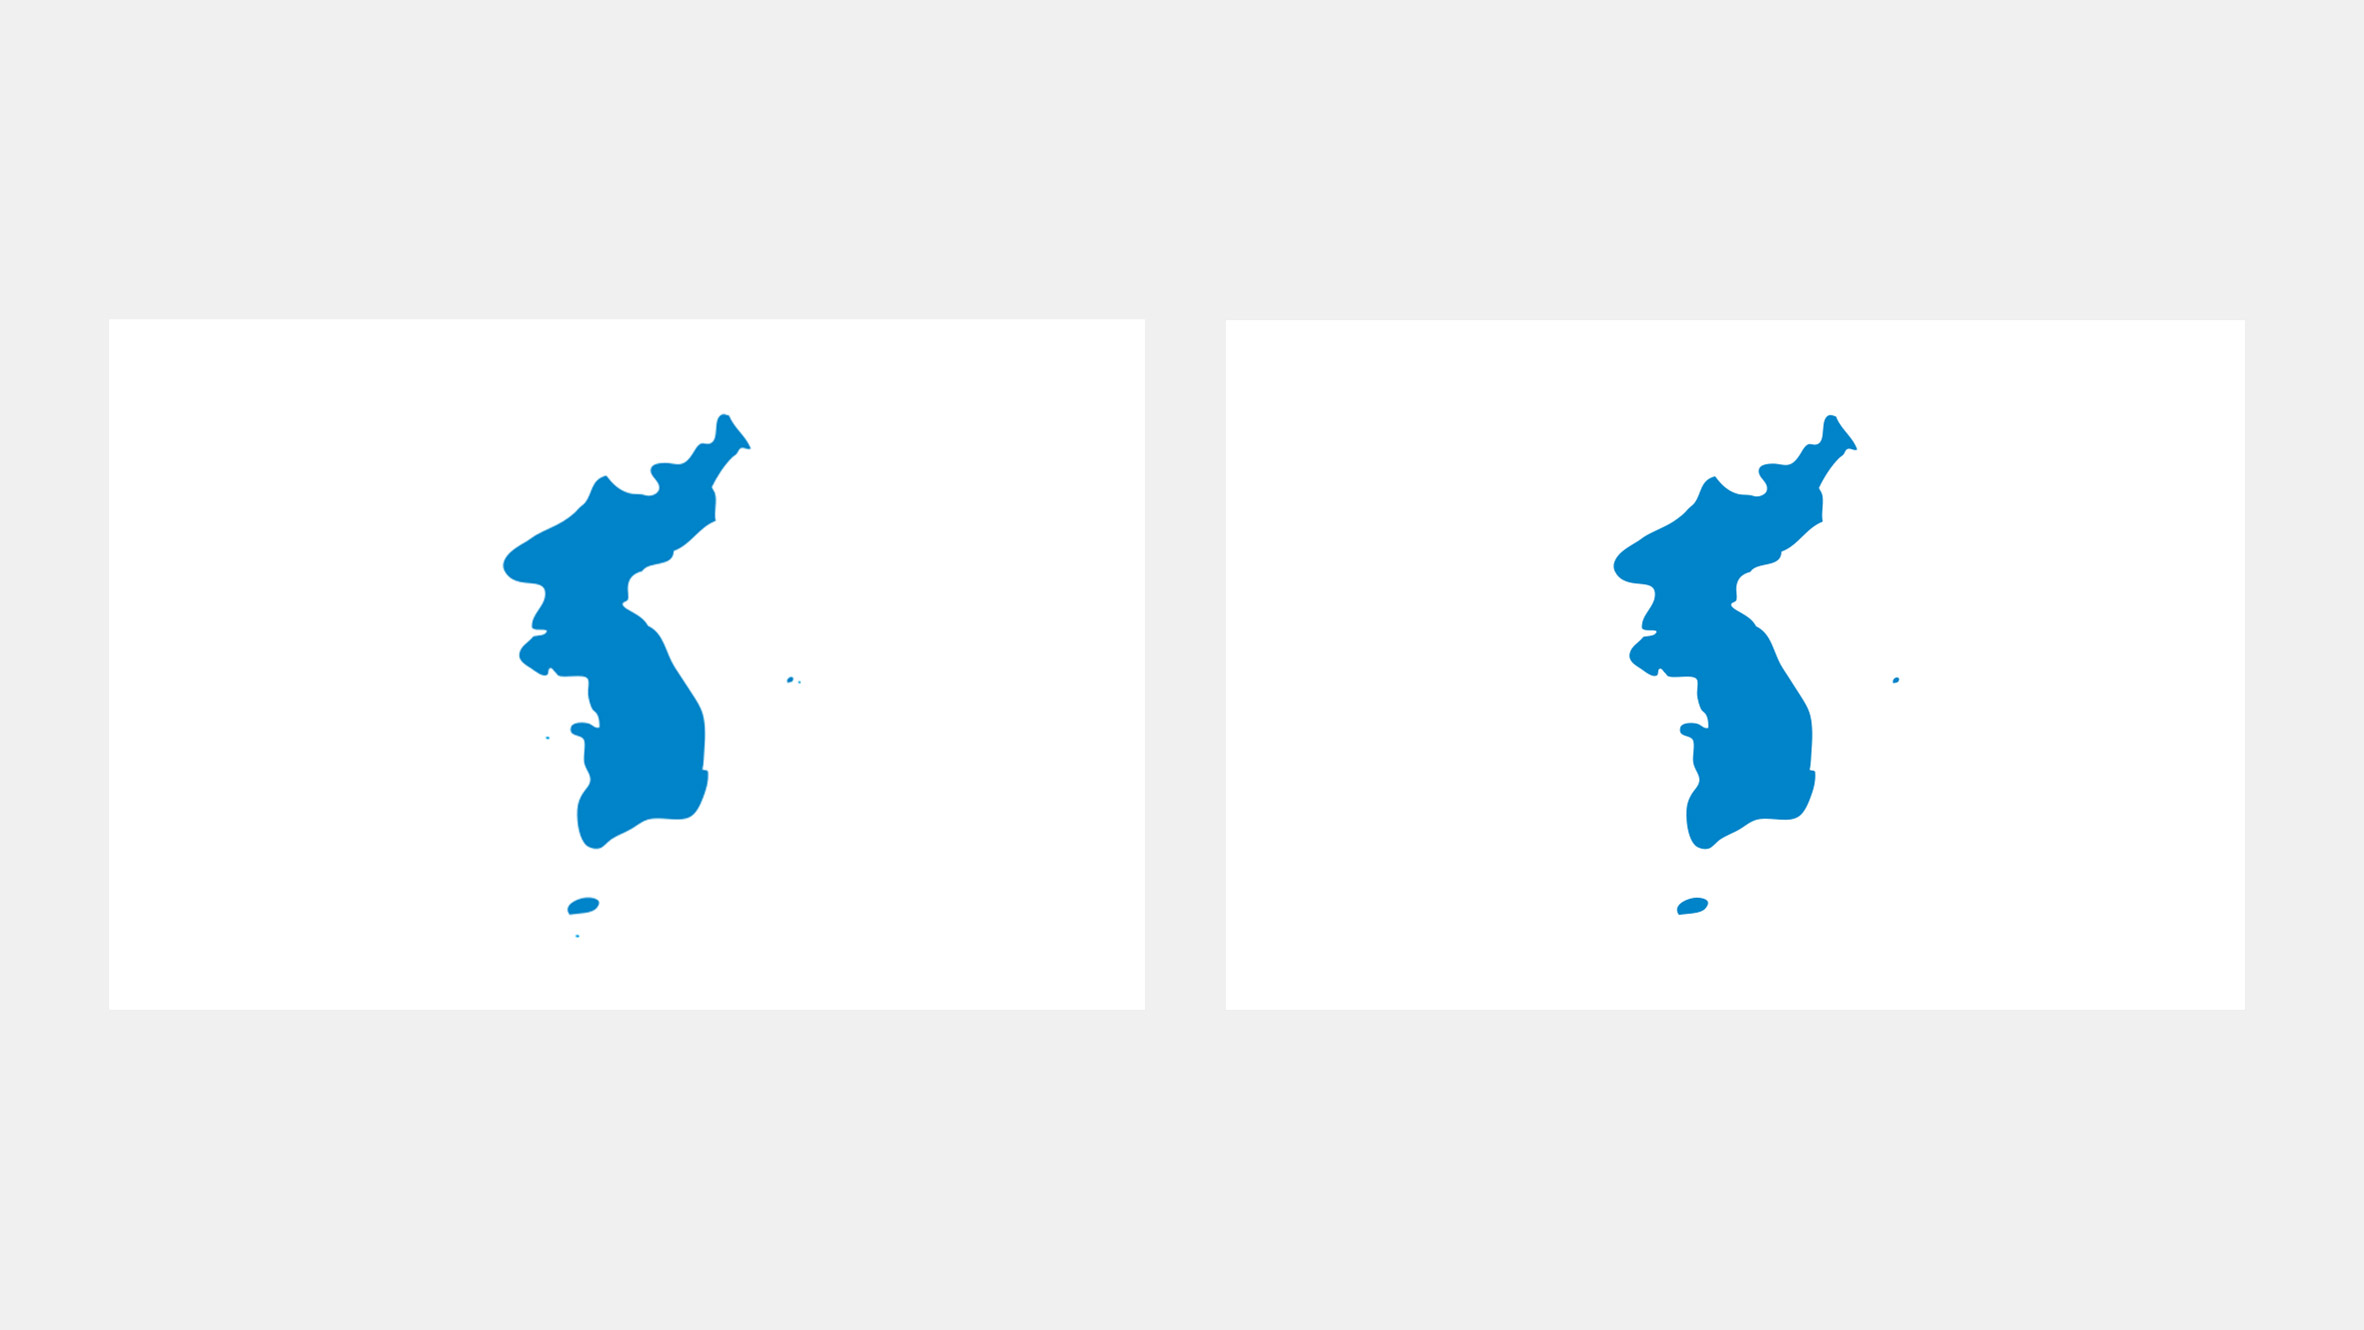 Japan protests inclusion of disputed islands on Korea's unified Olympic flag